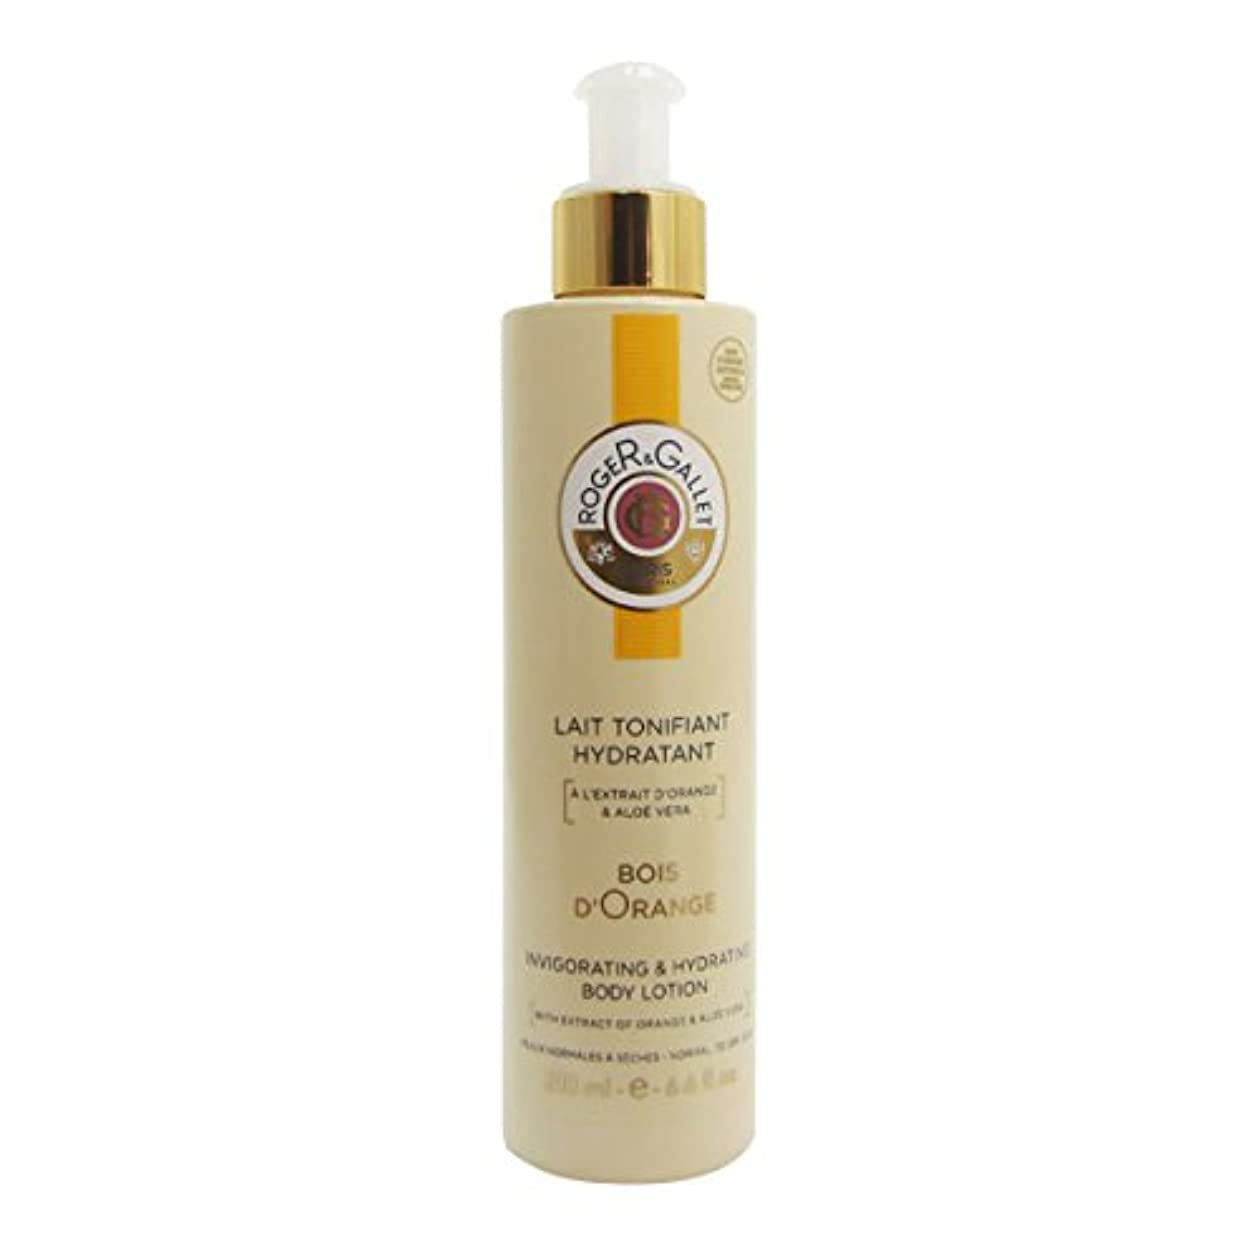 モンク退屈な名前でRoger Gallet Bois D'orange Toning Moisturizing Milk 200ml [並行輸入品]